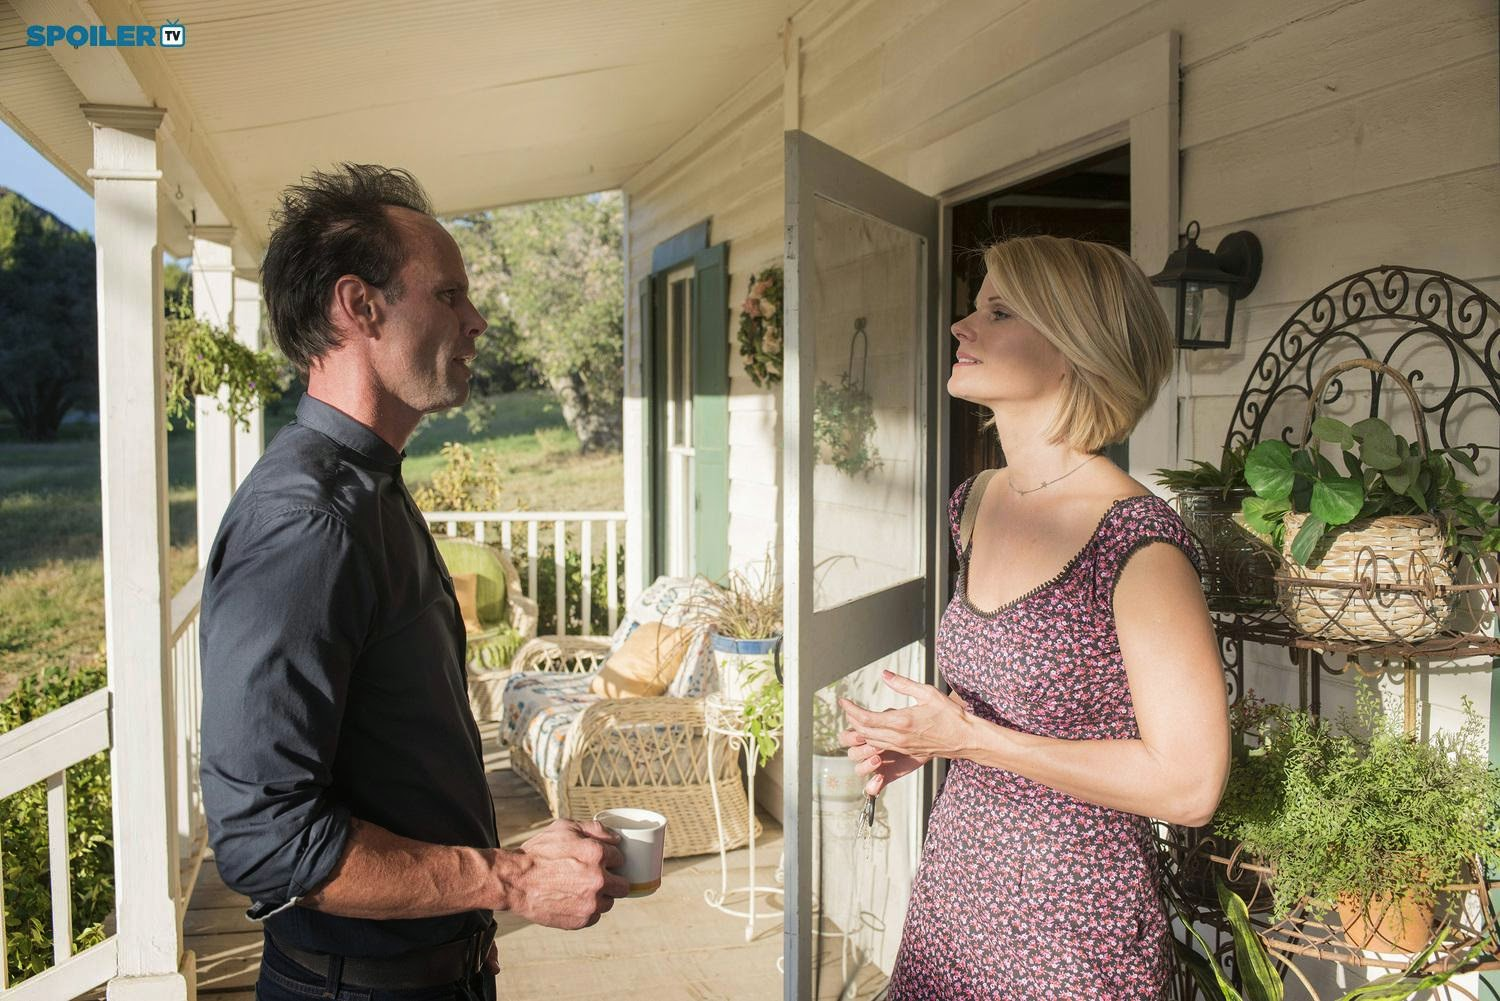 Justified - Fate's Right Hand - Recap and Review